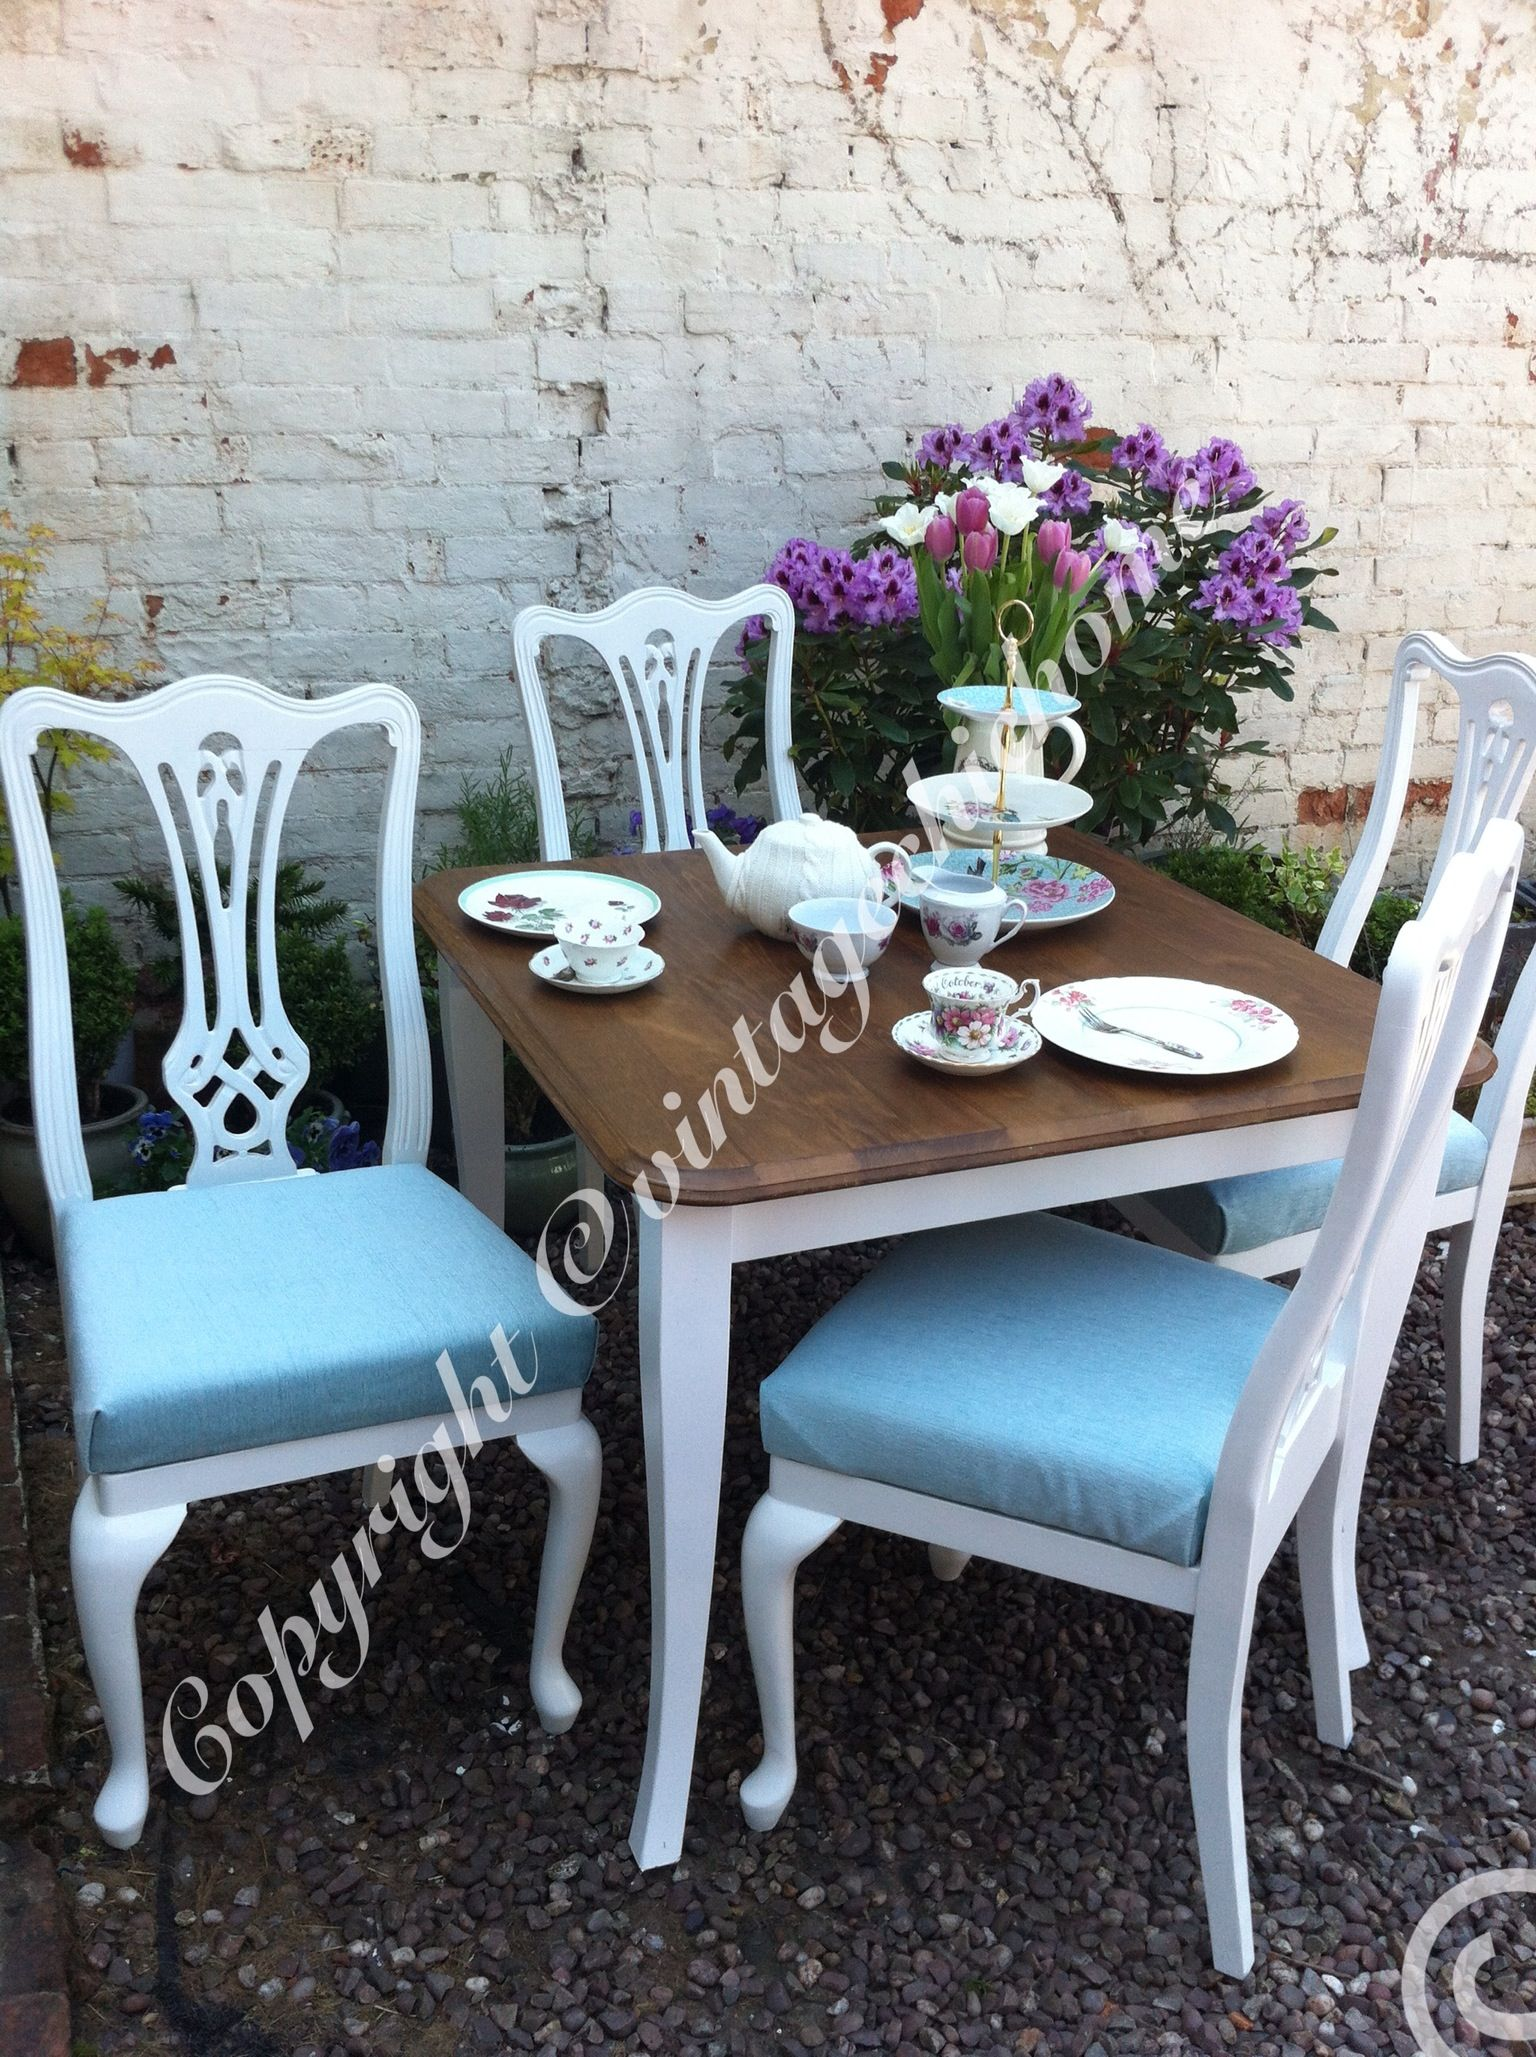 Shabby Chic Vintage Country Style Table And Chairs Www.vintagechichome.co.uk  Www